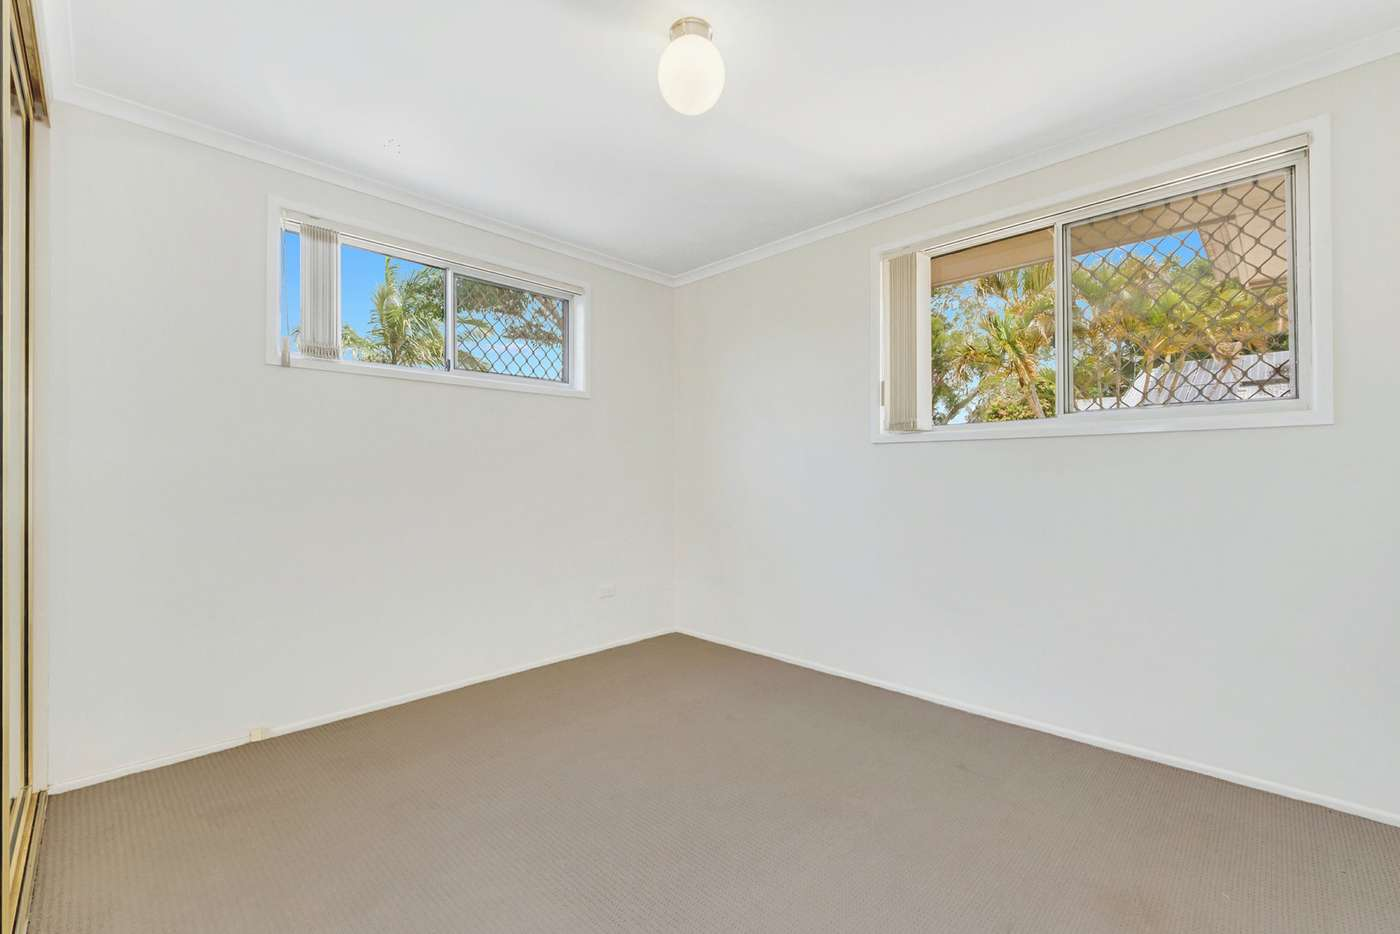 Sixth view of Homely unit listing, 32/79 Station Road, Lawnton QLD 4501